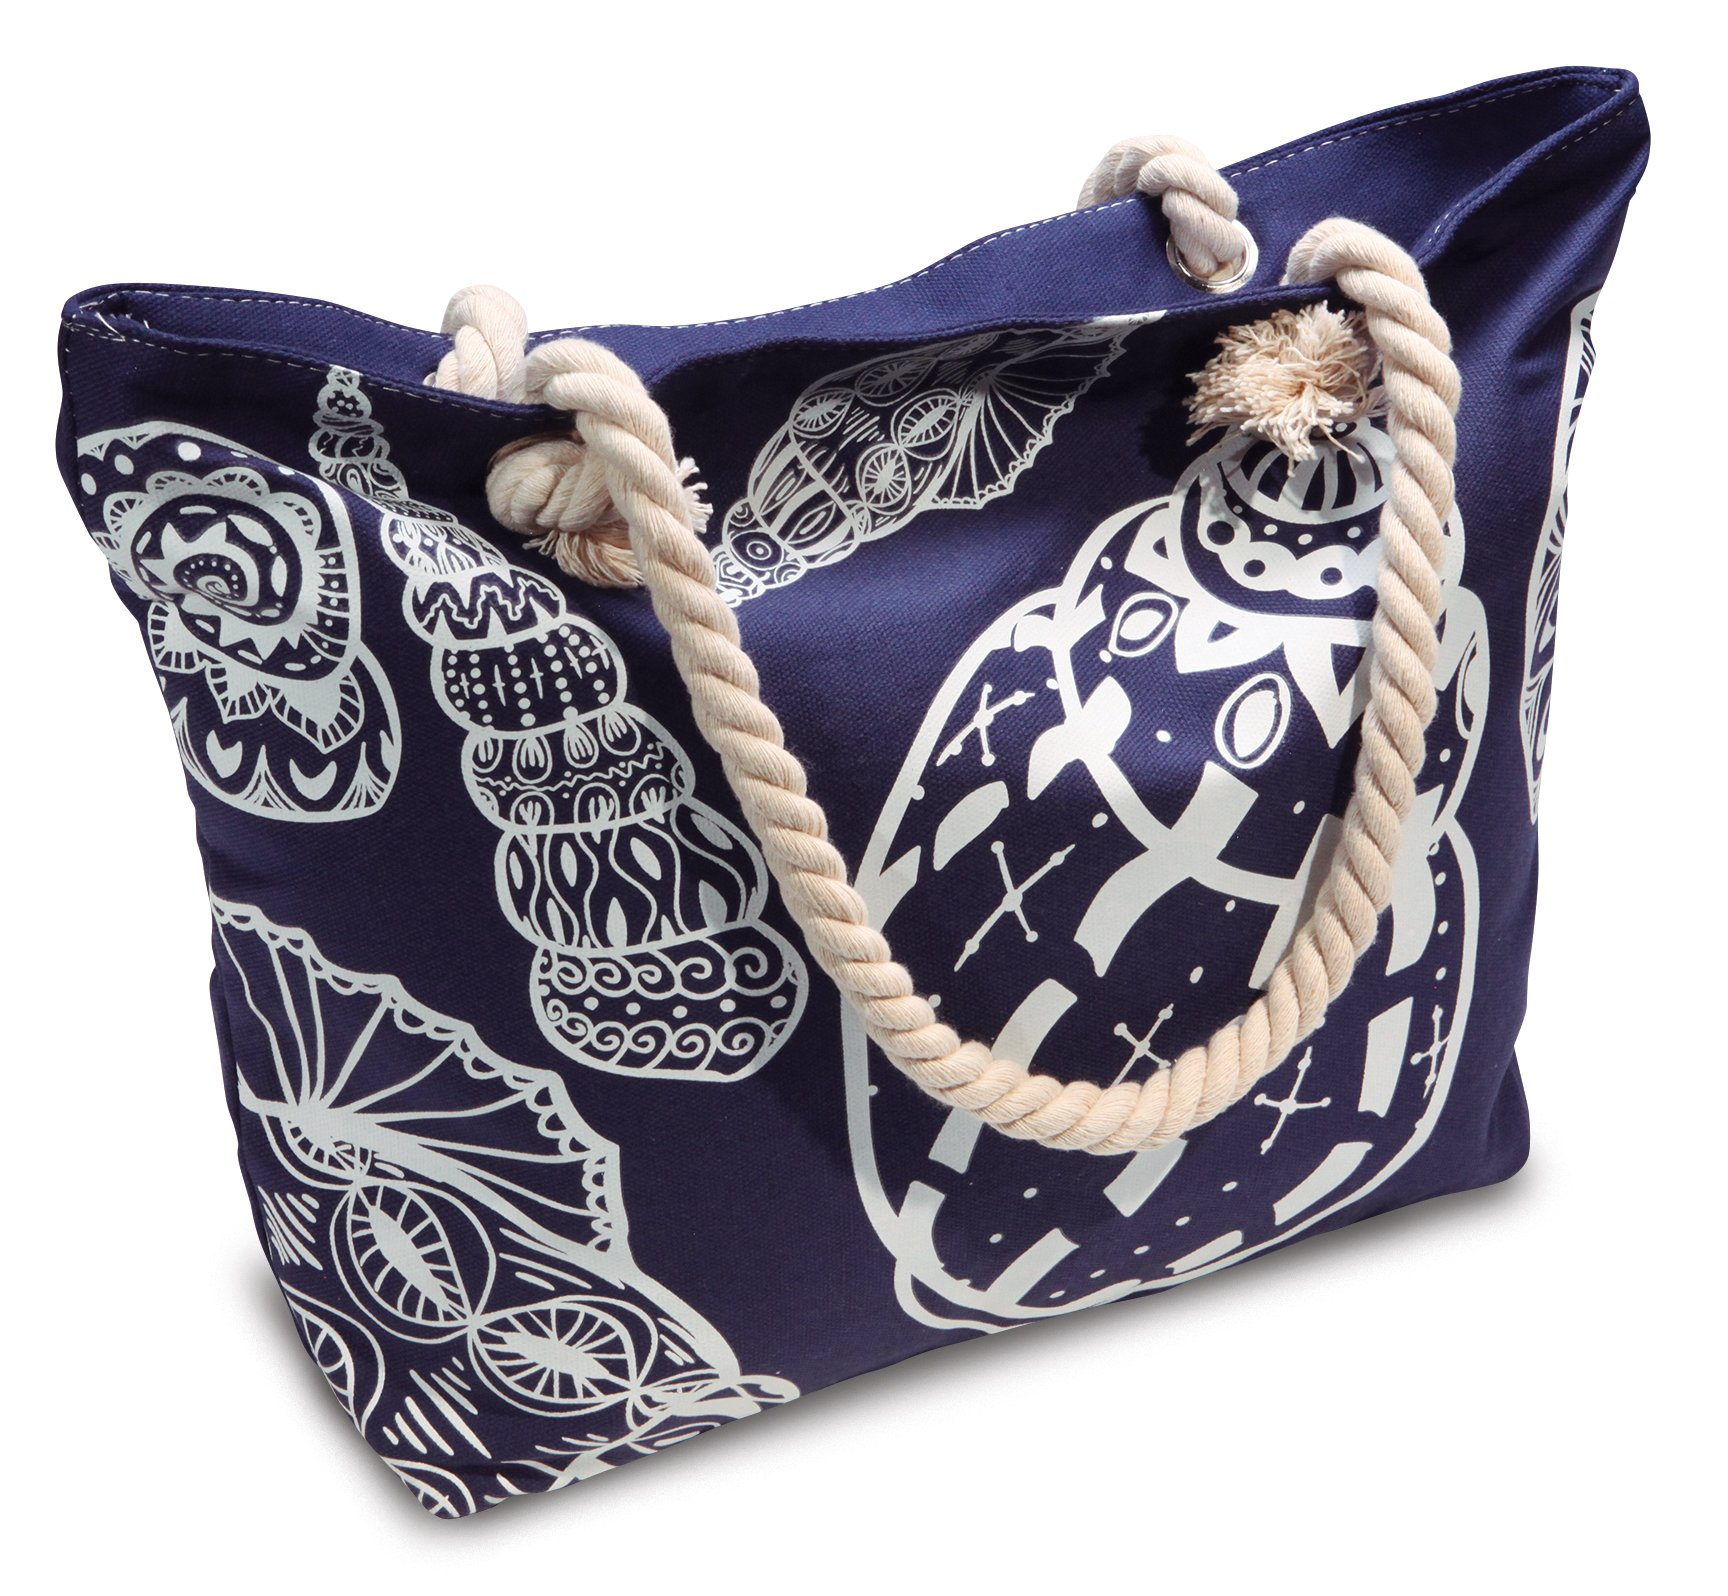 Beach Bag With Inner Zipper Pockets from Moskus Gear - Blue Summer Tote with Seashell Pattern and Rope Handles and Bonus Drybag for Smartphone by Moskus Gear